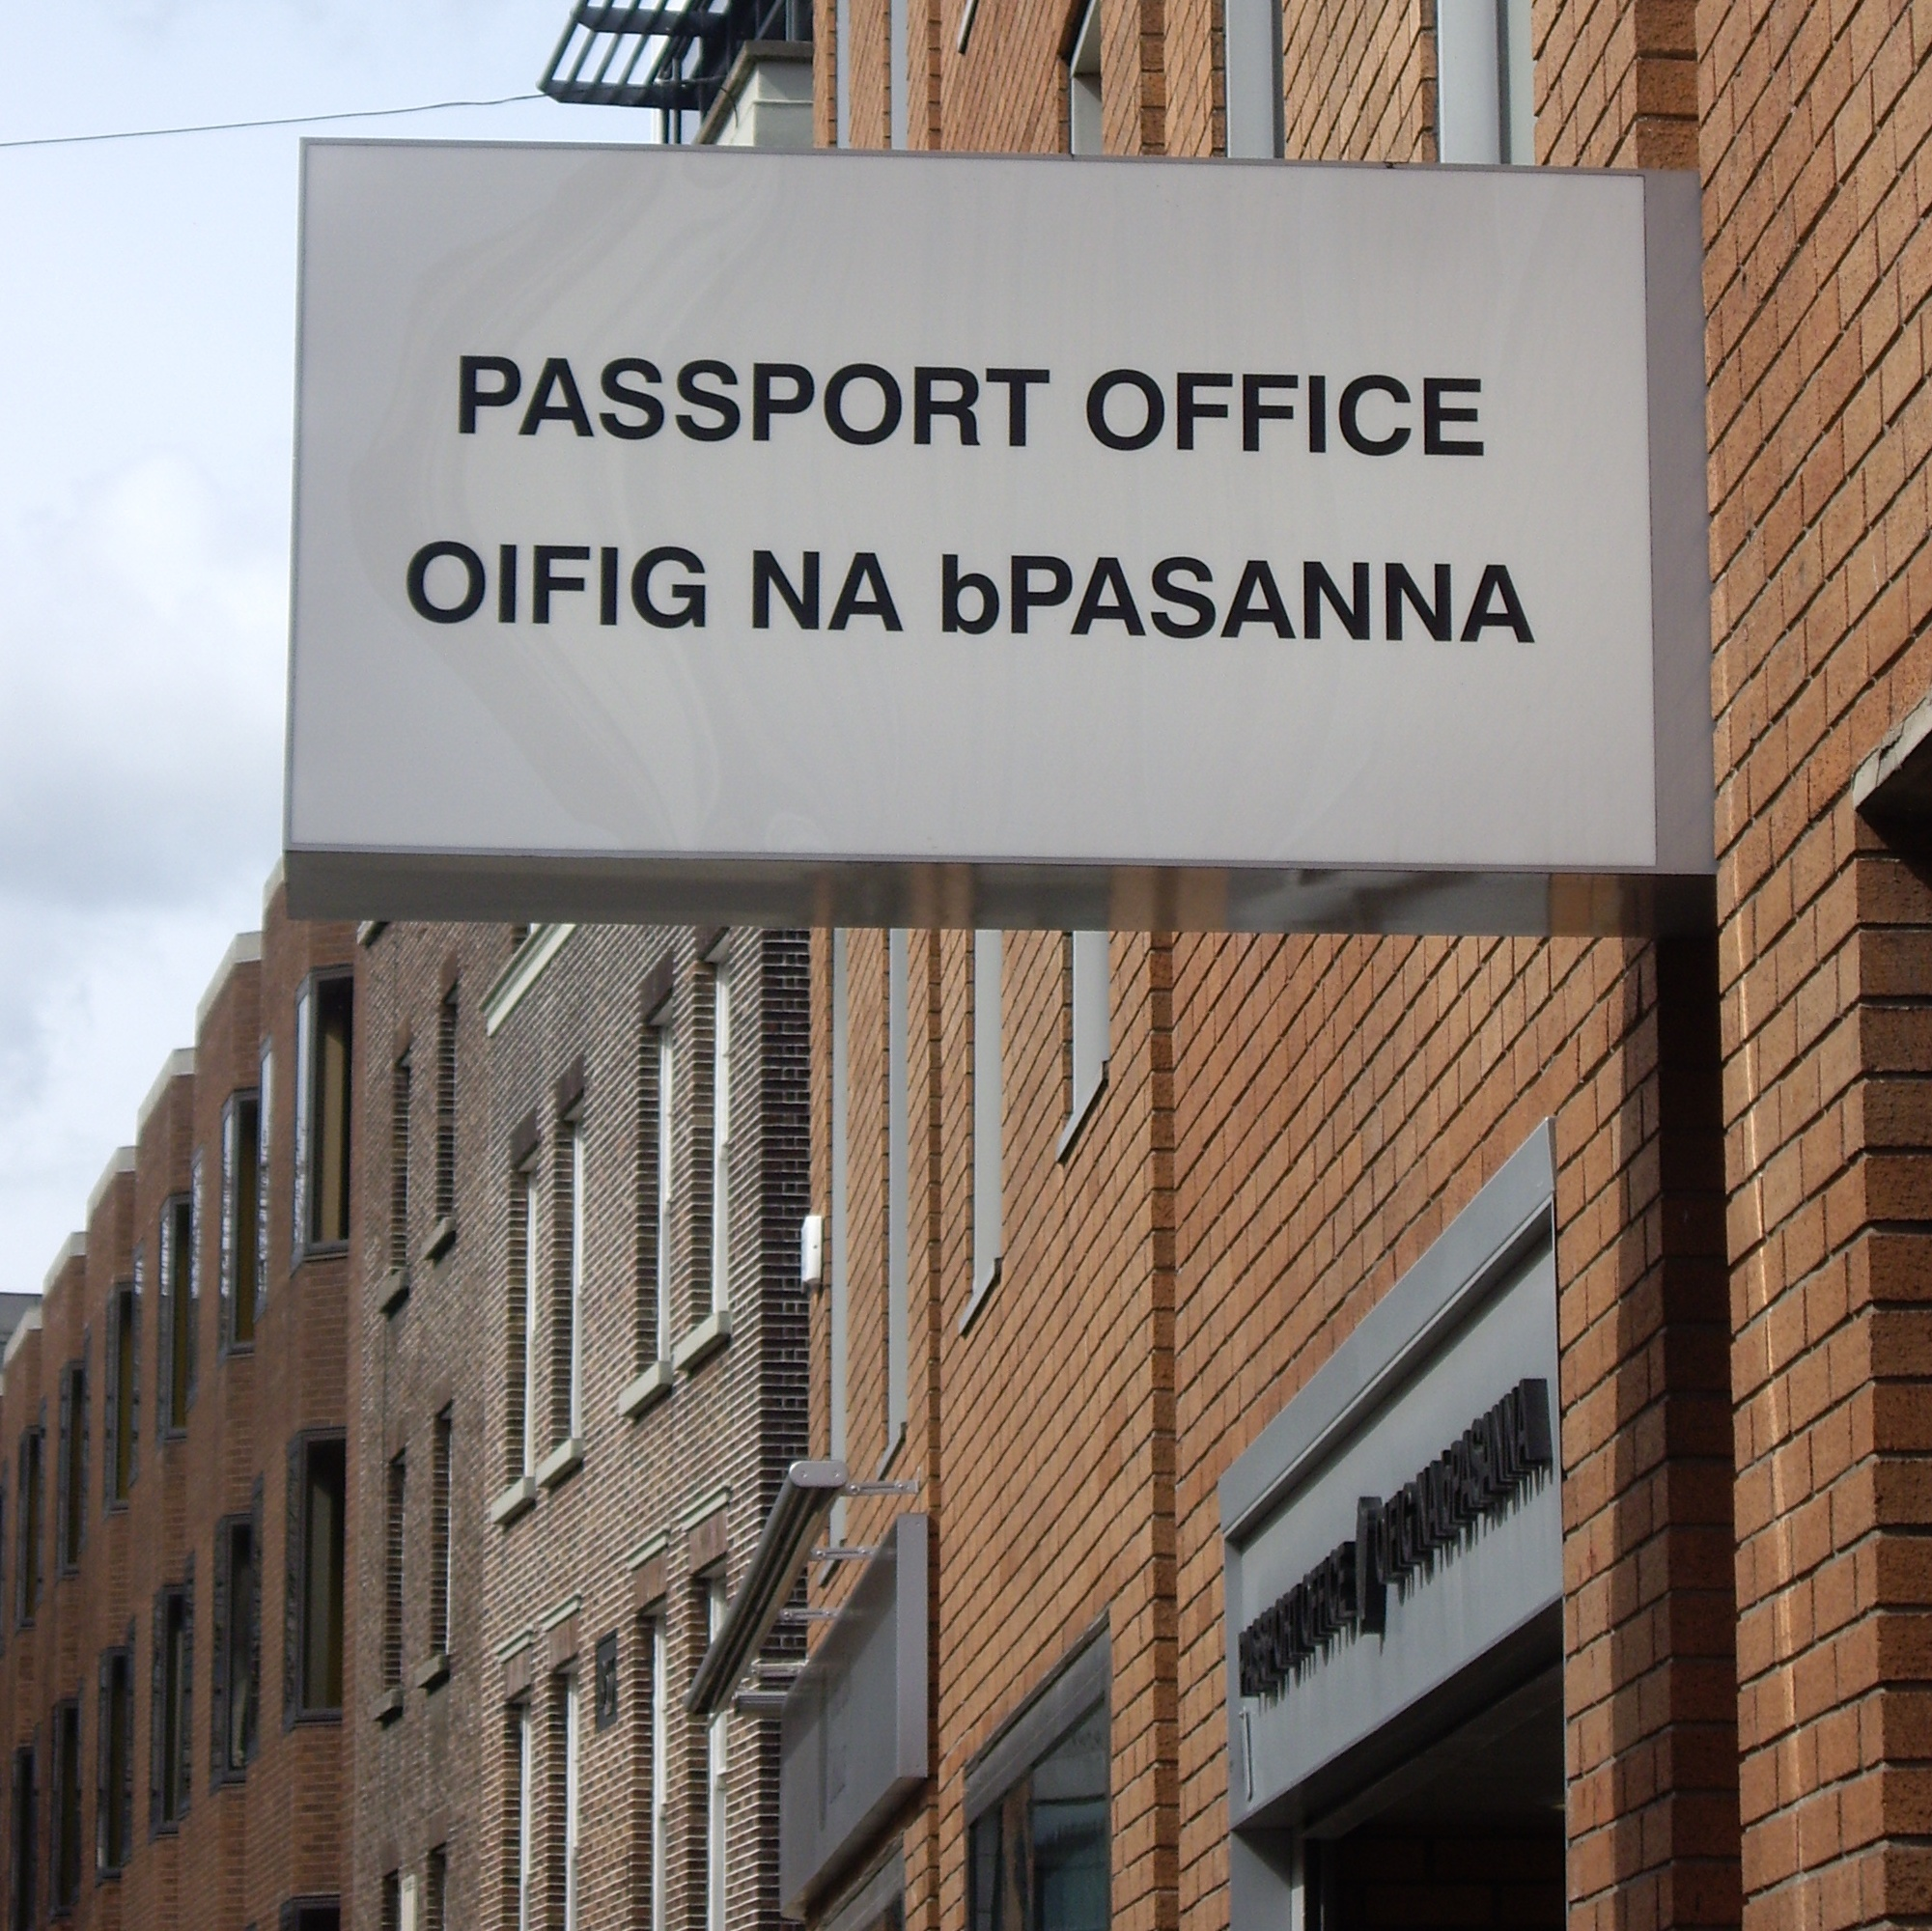 Passport Office Express Service Exceeds Expectations